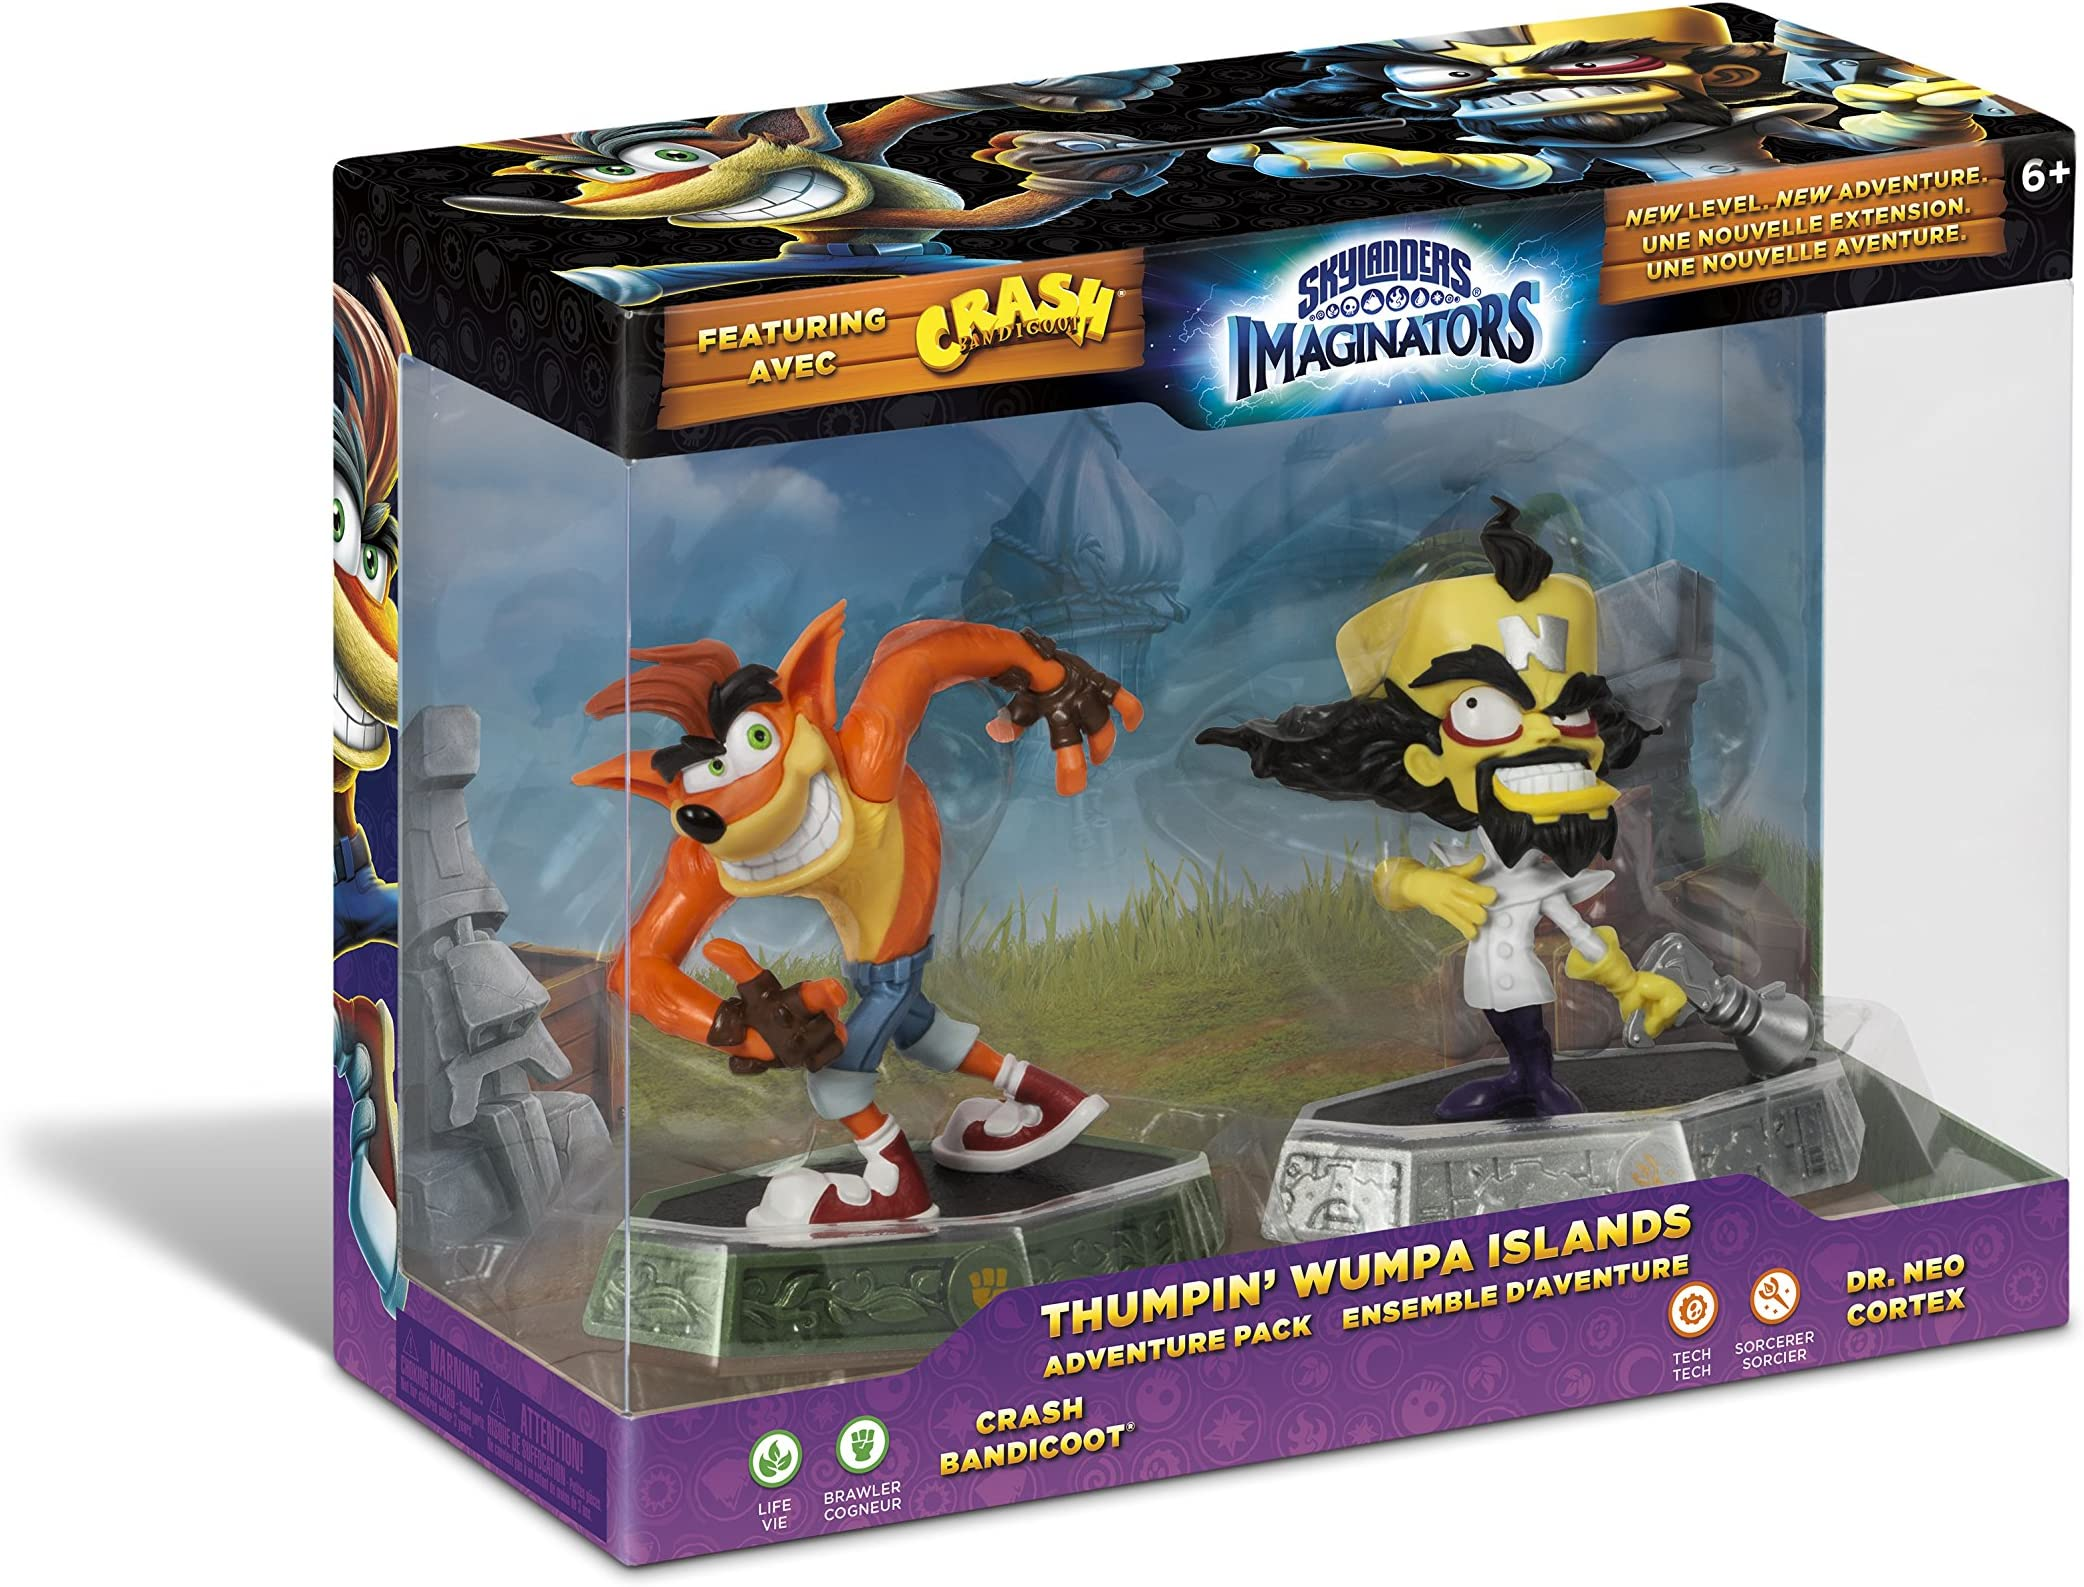 Skylanders Imaginators Thumpin' Whumpa Islands Adventure Pack by Activision